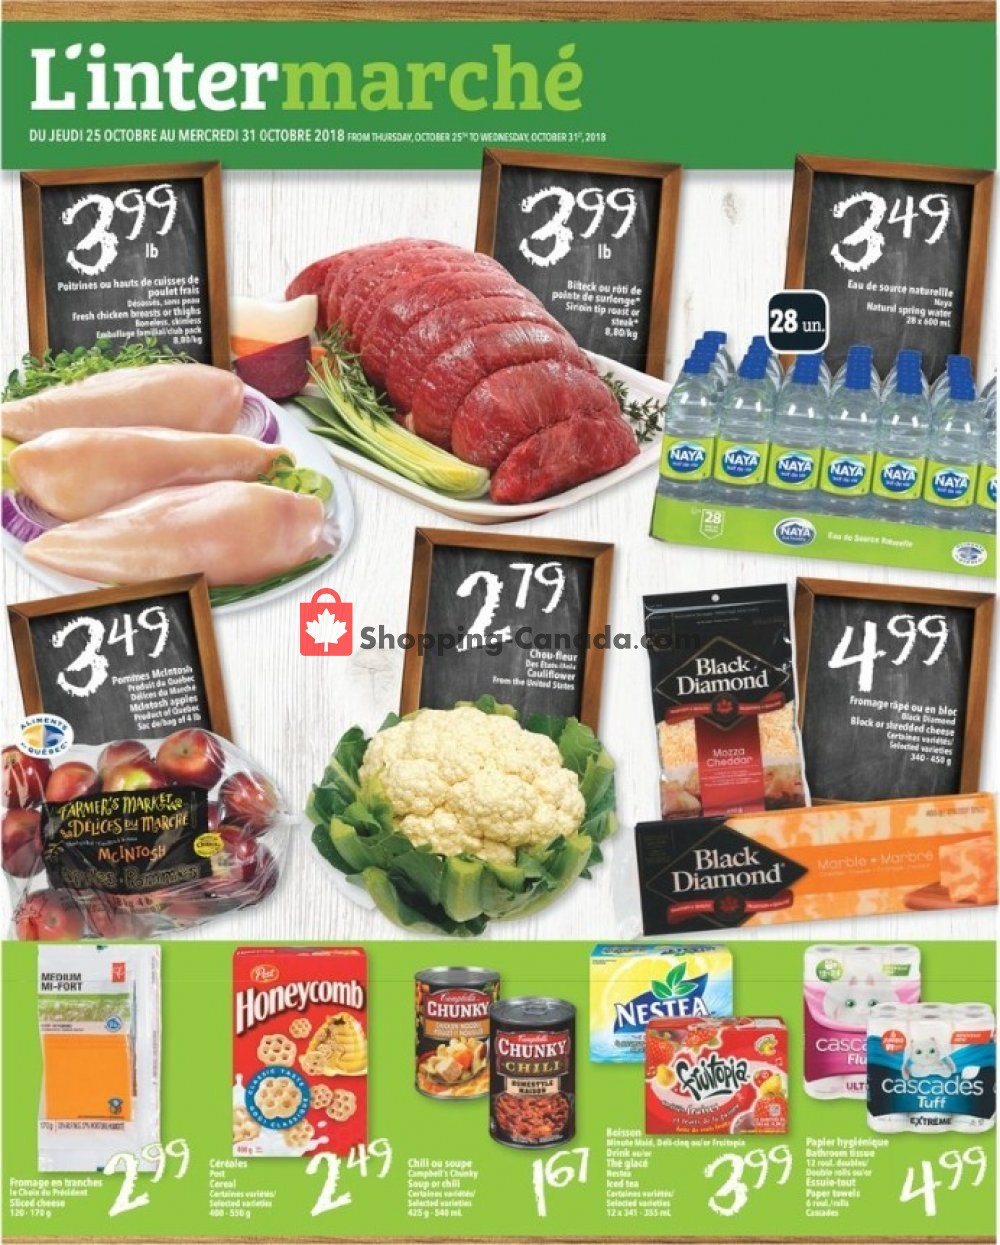 Flyer L'inter Marché Canada - from Thursday October 25, 2018 to Wednesday October 31, 2018